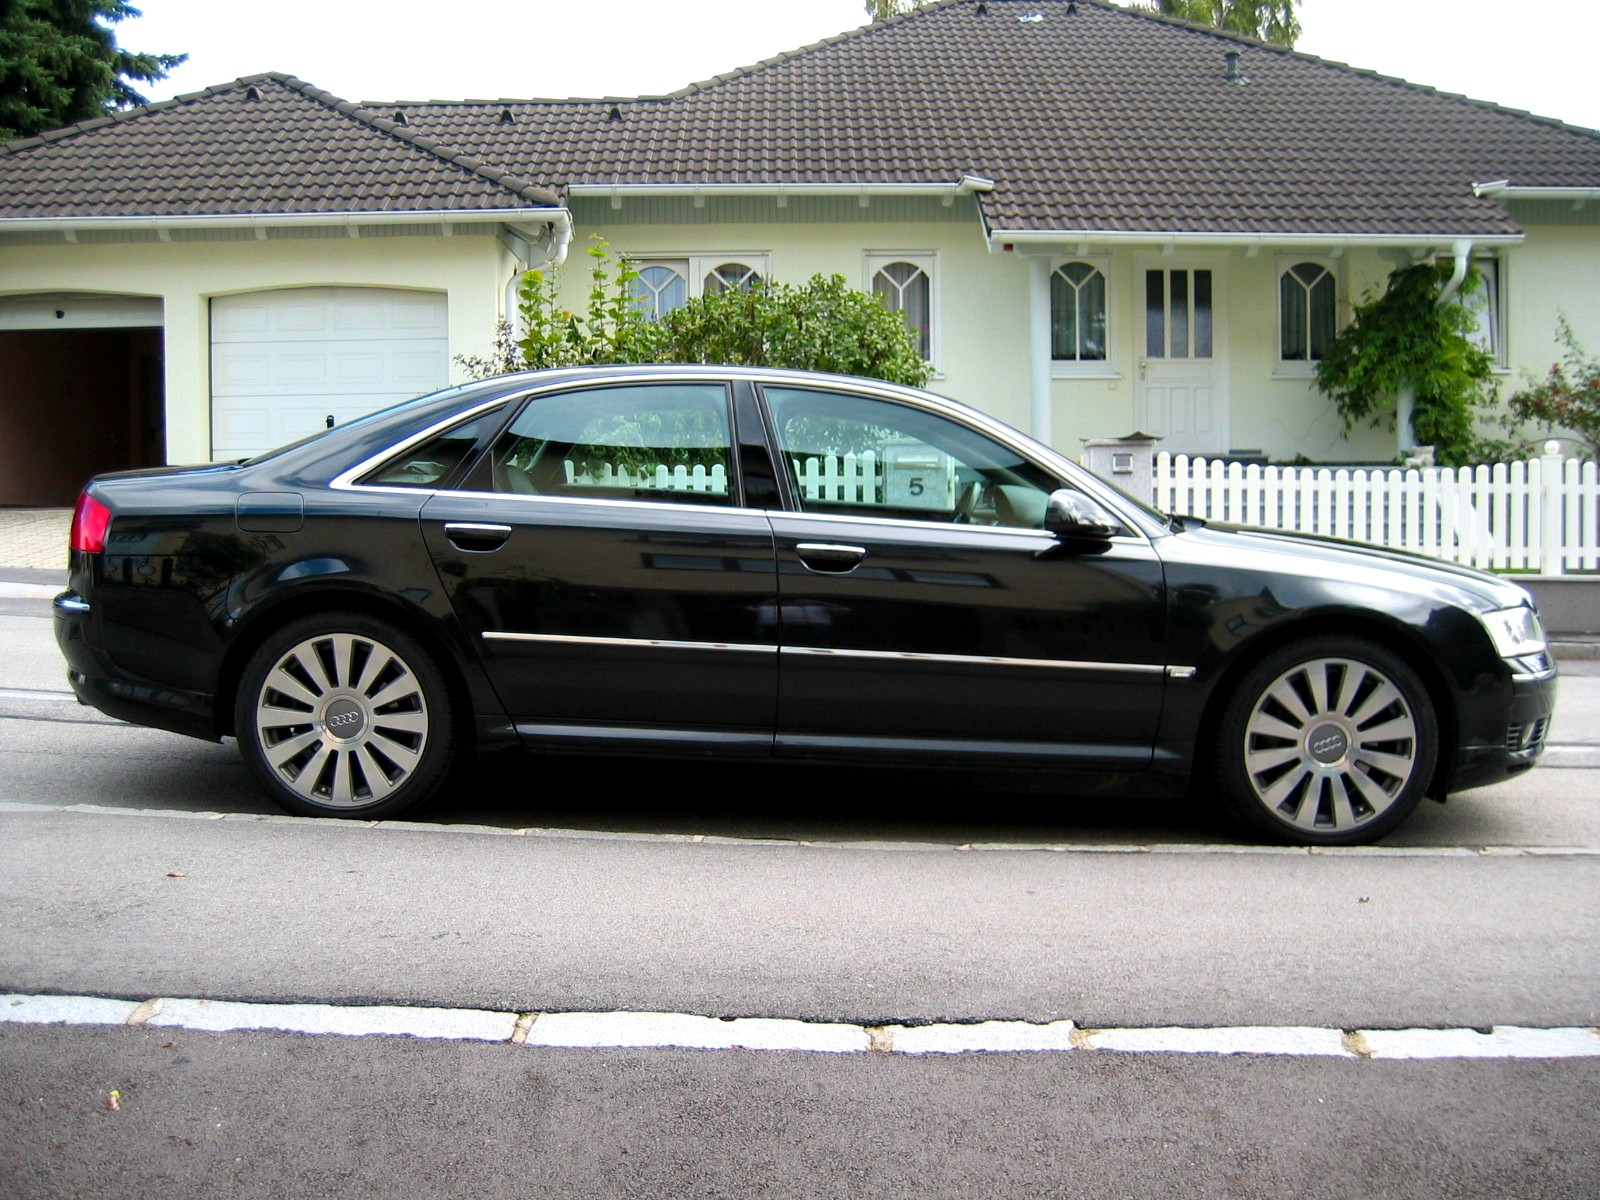 audi a8 (4e) 2007 pictures #10